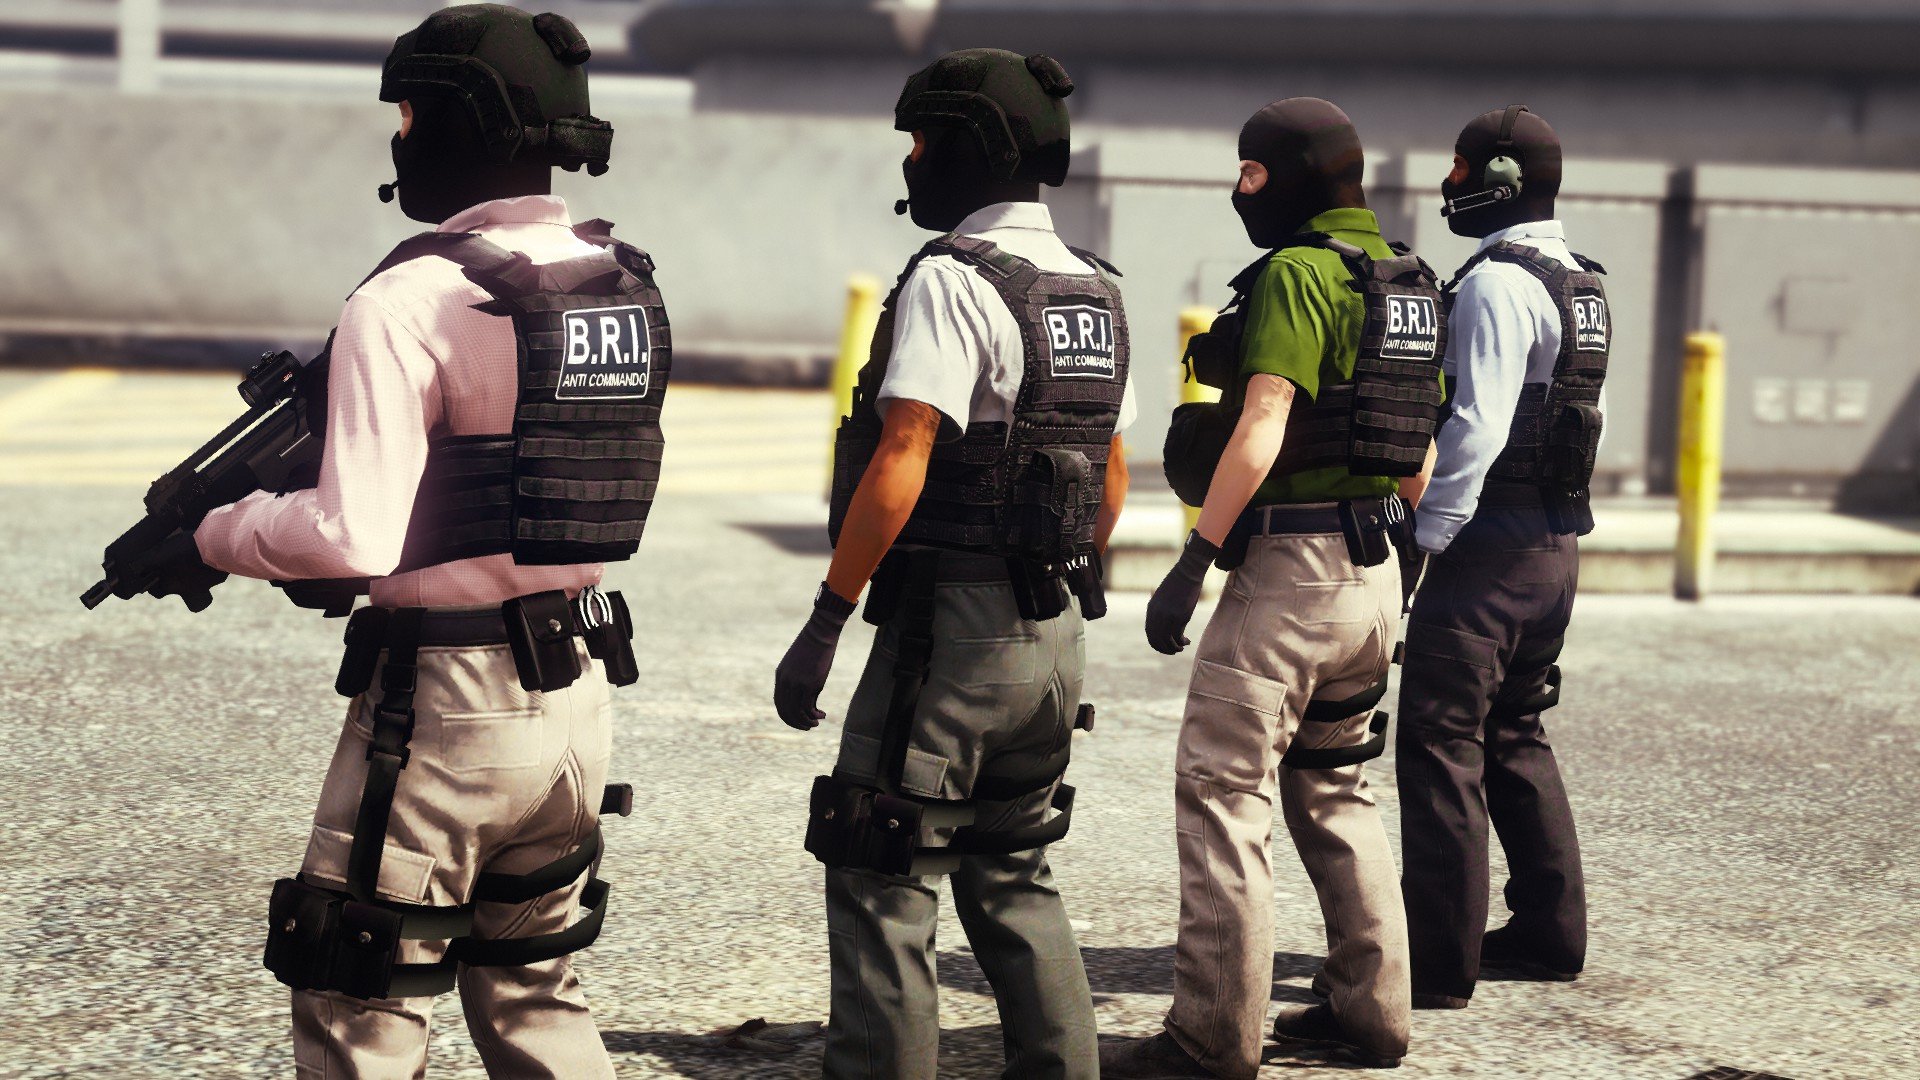 tenue bri french police anti terror unit gta5. Black Bedroom Furniture Sets. Home Design Ideas